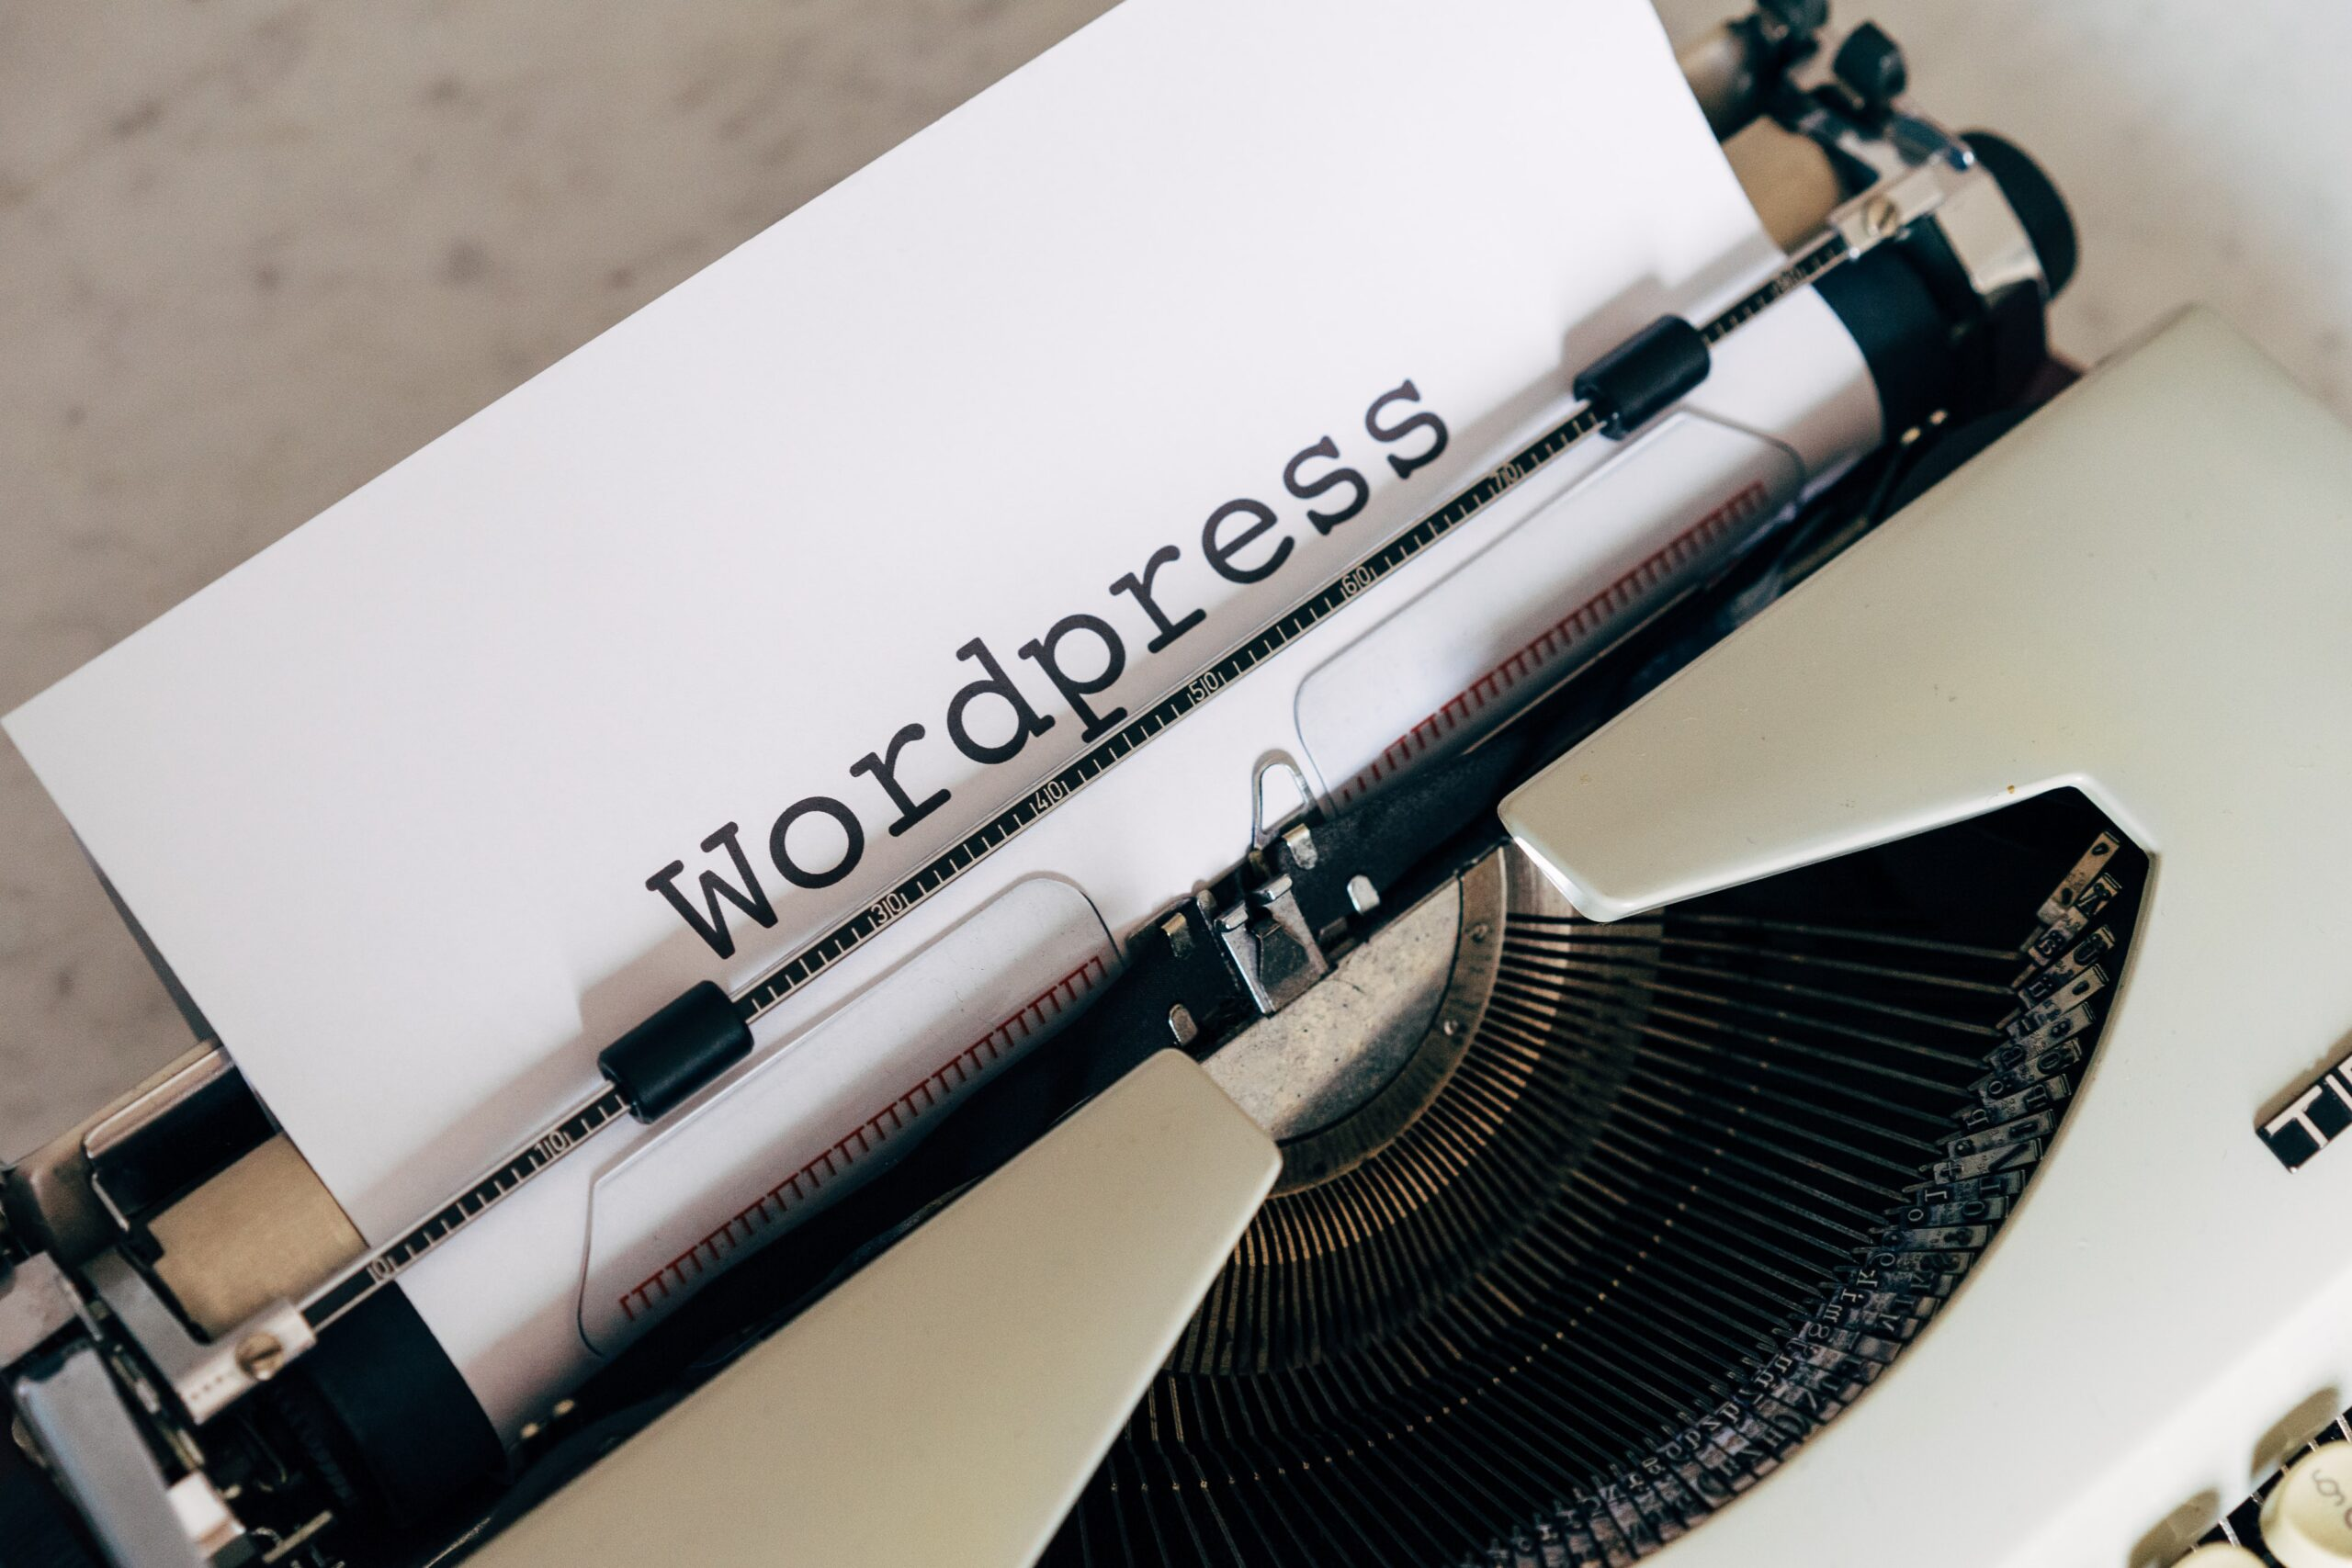 WordPress.com vs WordPress.org – Differences and Which One You Should Use